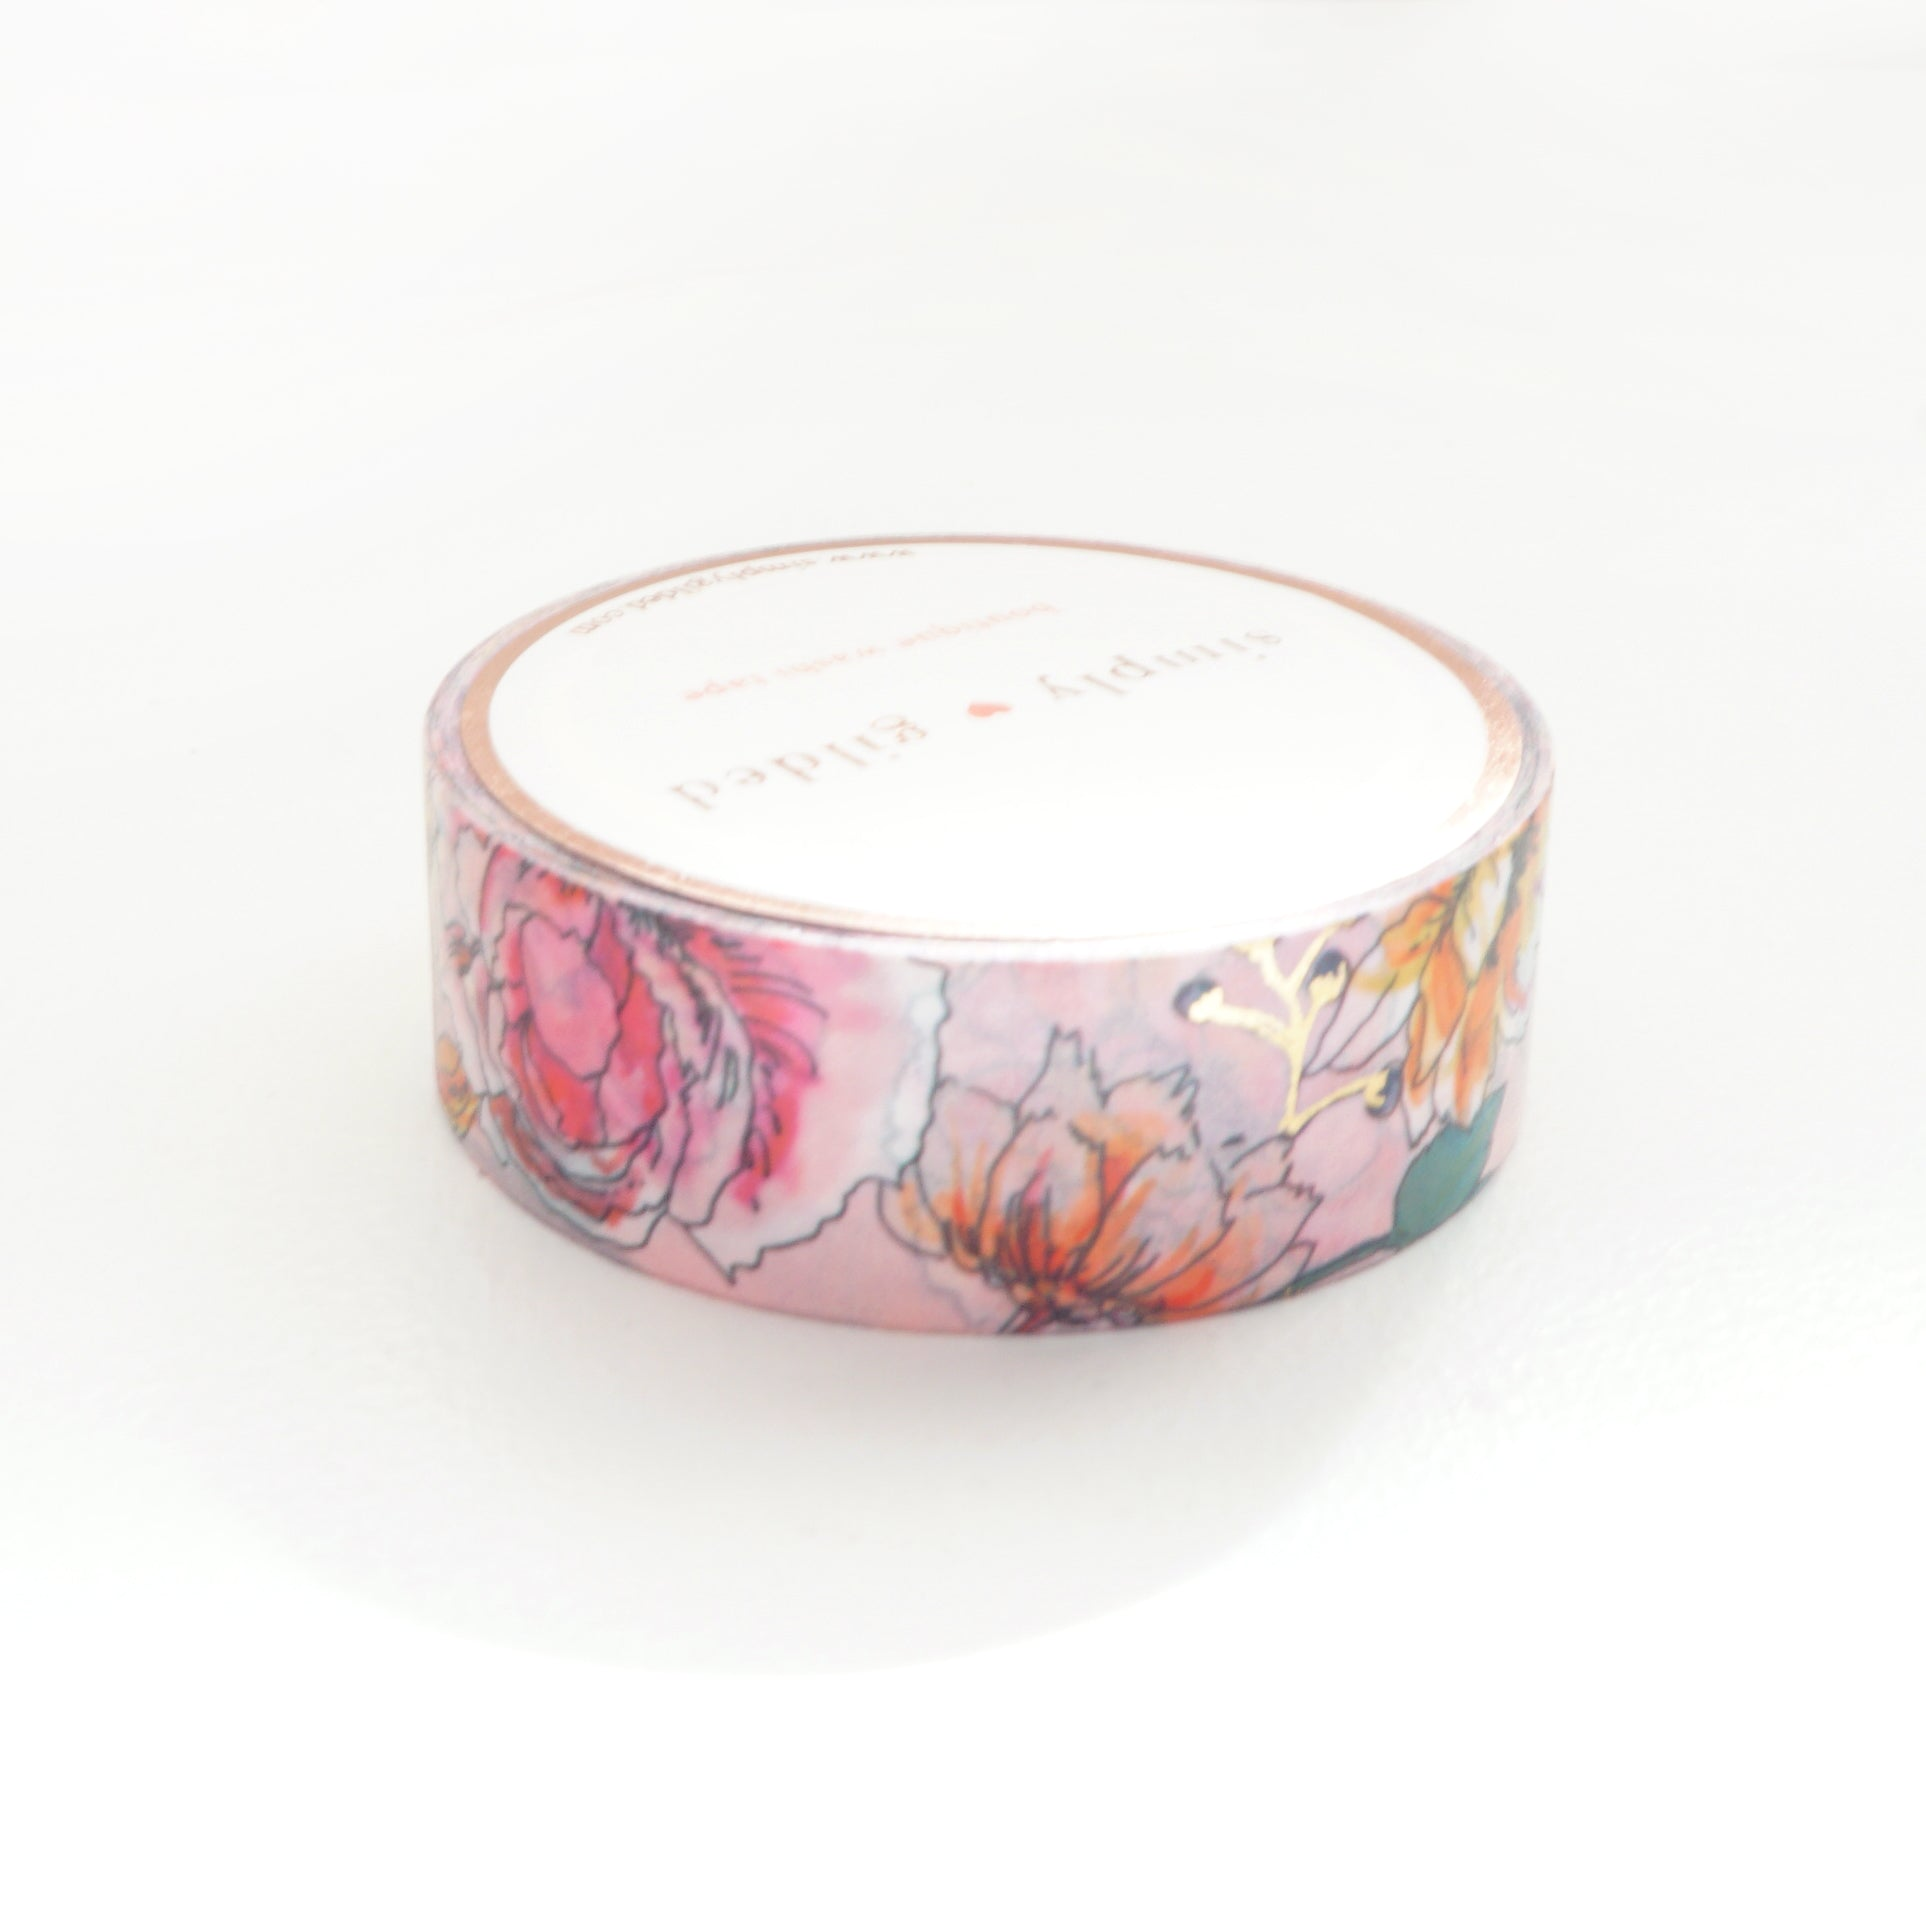 WASHI TAPE 15mm - PINK Painted Garden + lt. gold (May Release)